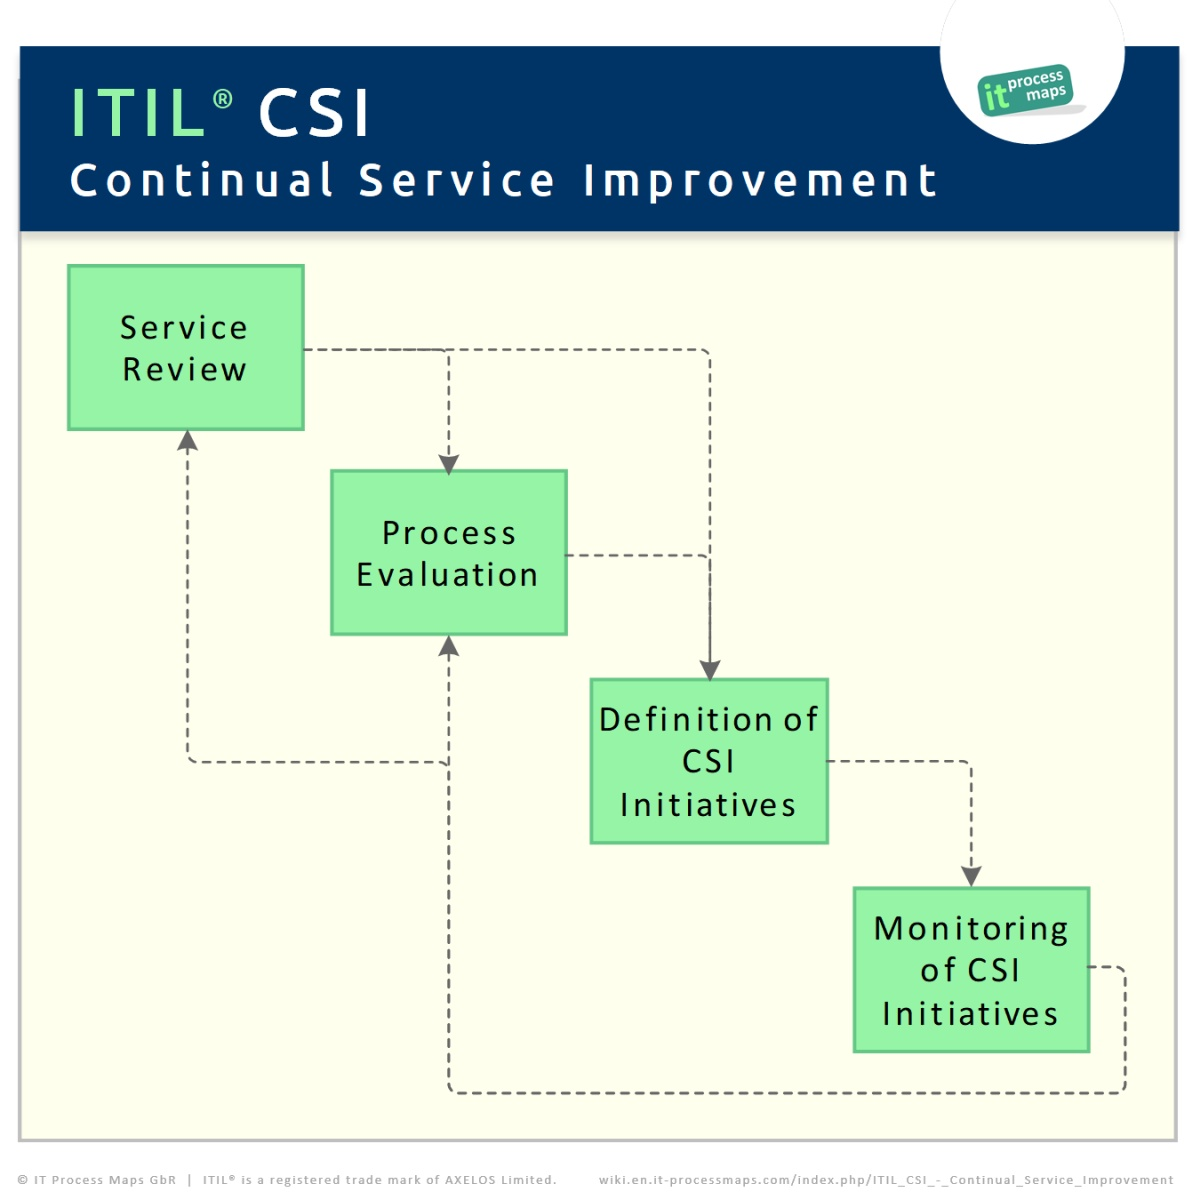 Itil csi continual service improvement it process wiki itil continual service improvement itil csi pronofoot35fo Image collections